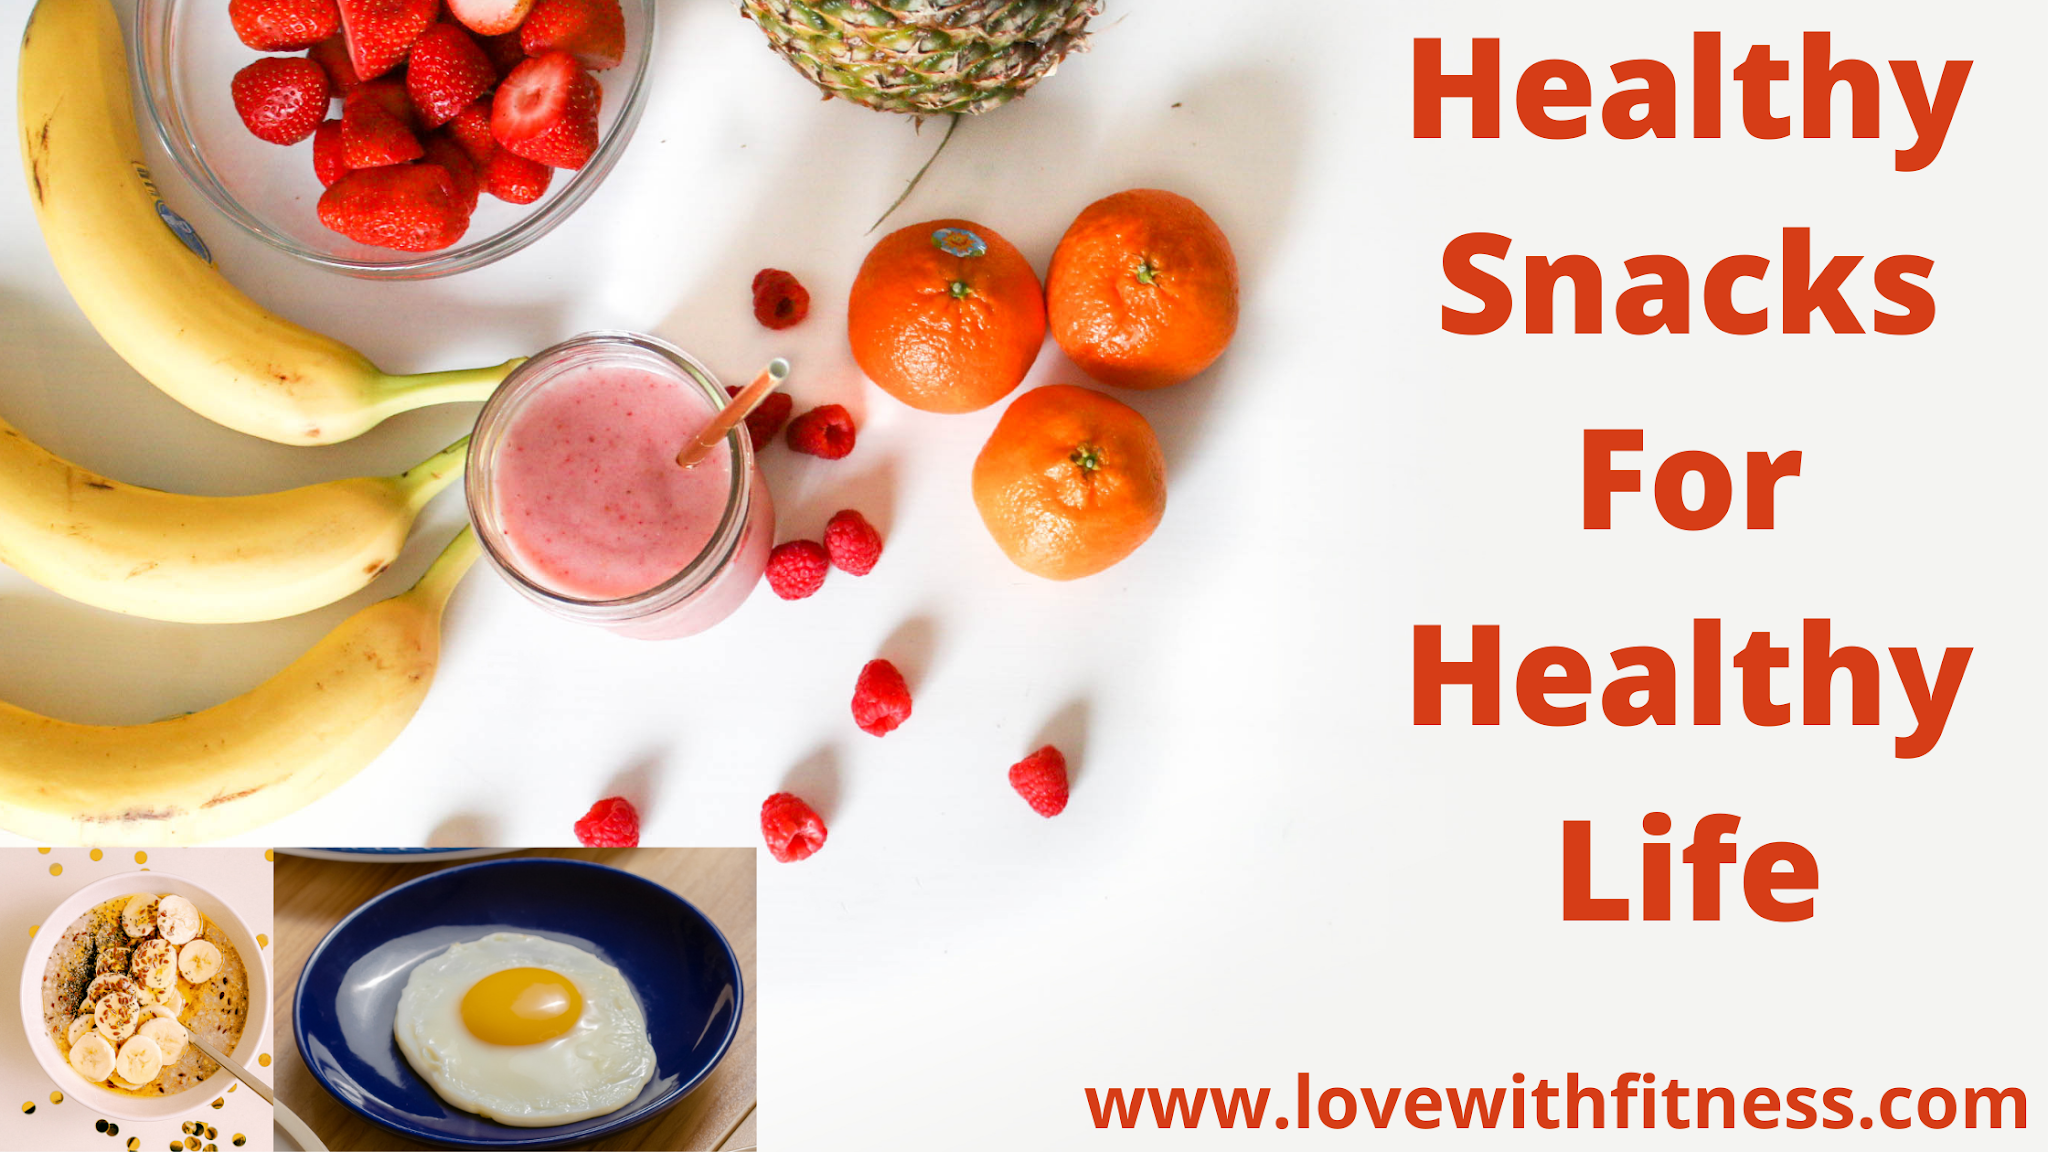 Healthy Snacks For Healthy Life